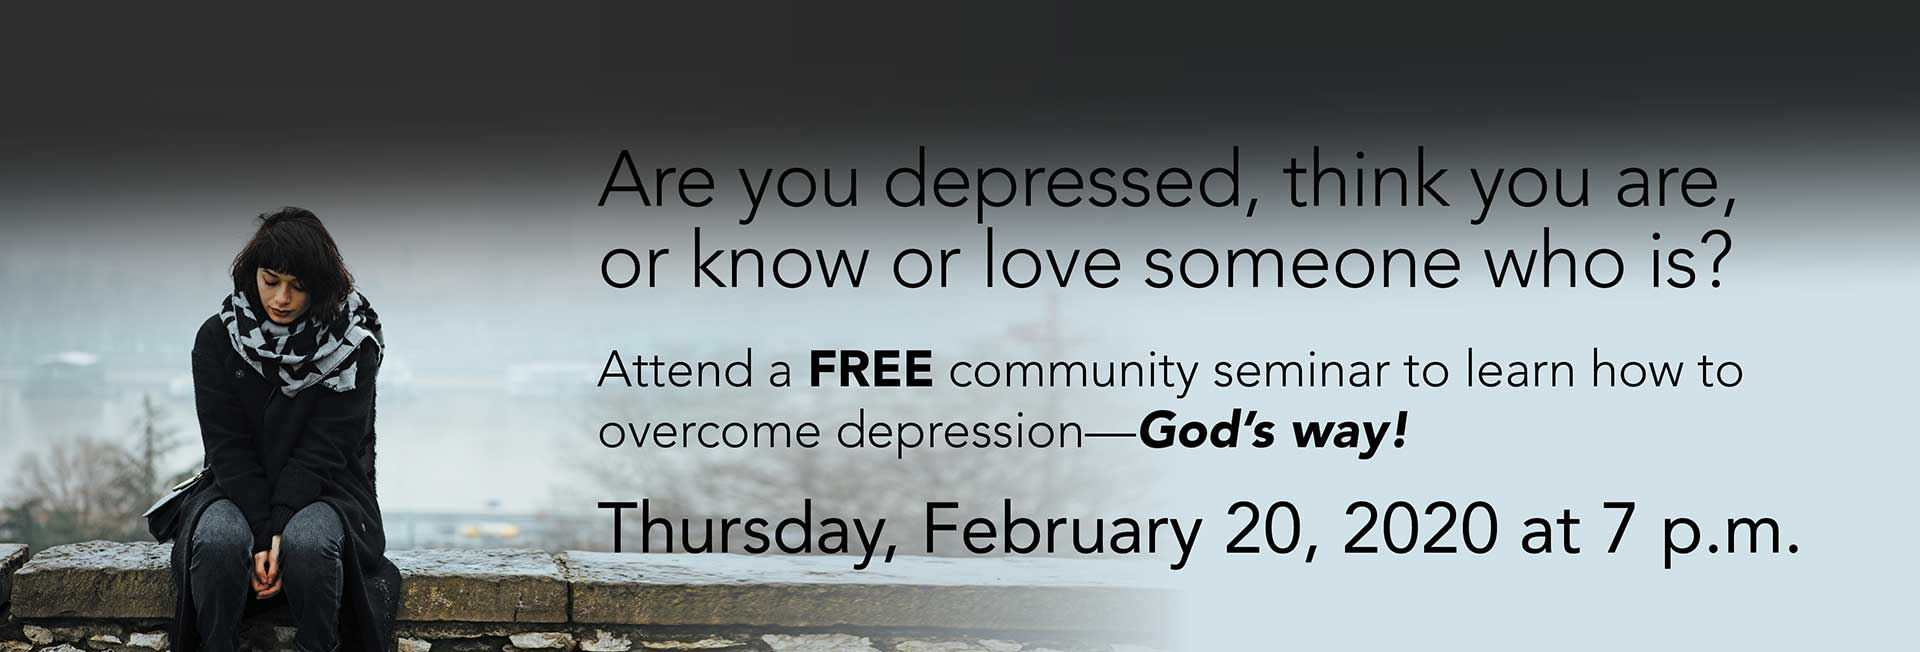 How to overcome depression God's way-- Free community seminar